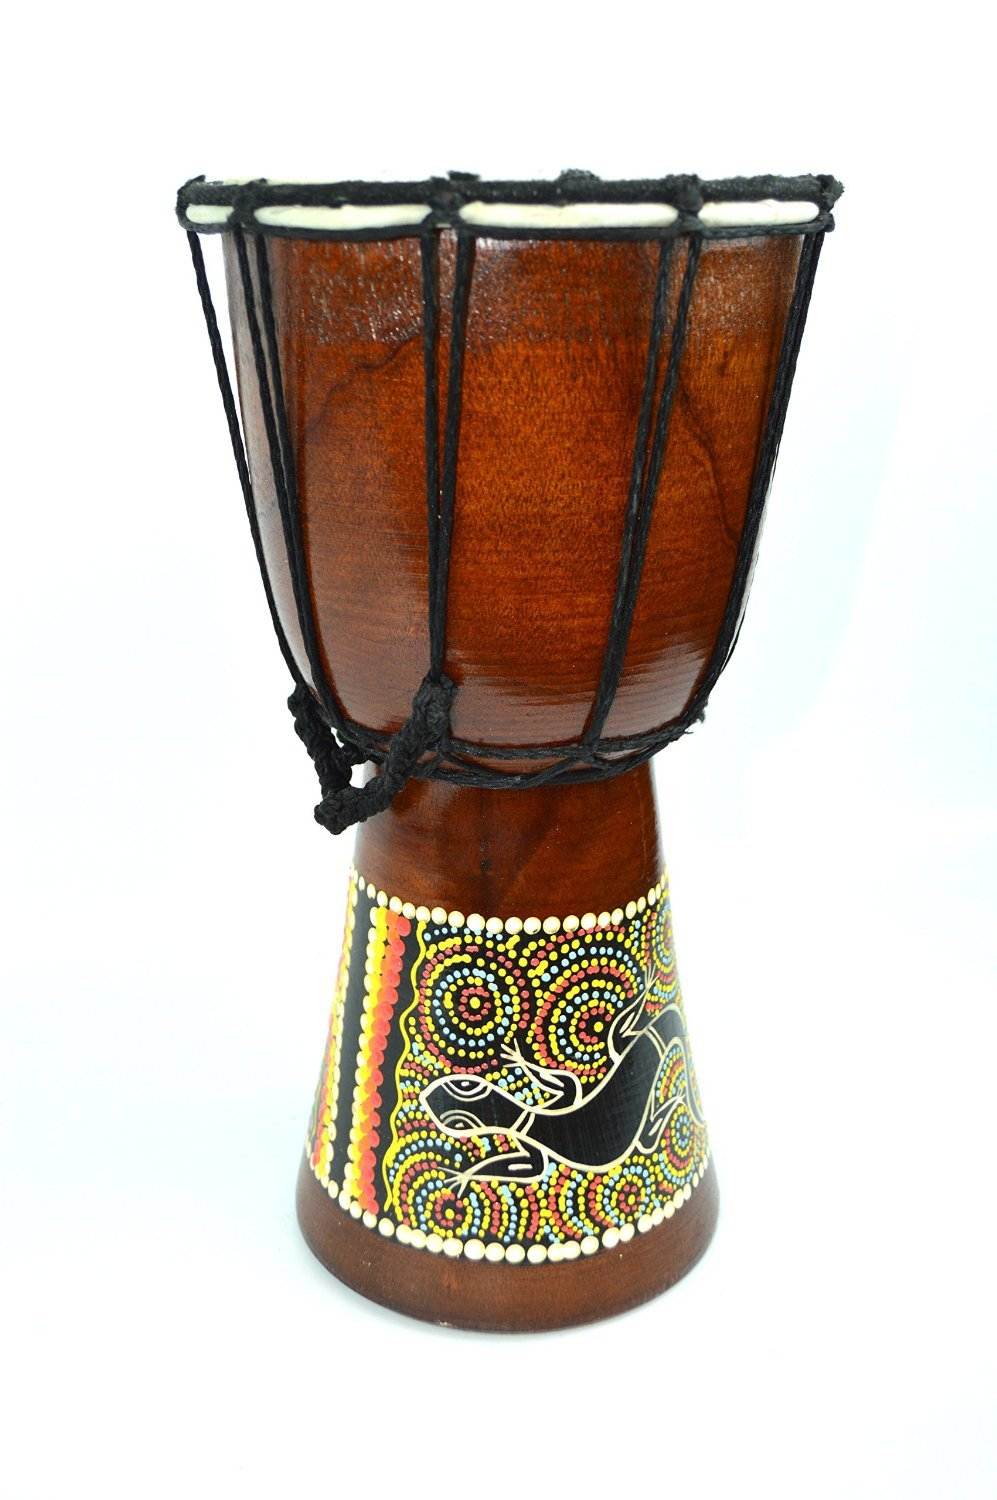 12 DJEMBE DRUM BONGO HAND CARVED AFRICAN ABORIGINAL DOT ART GECKO LIZARD DESIGN by Bethlehem Gifts TM